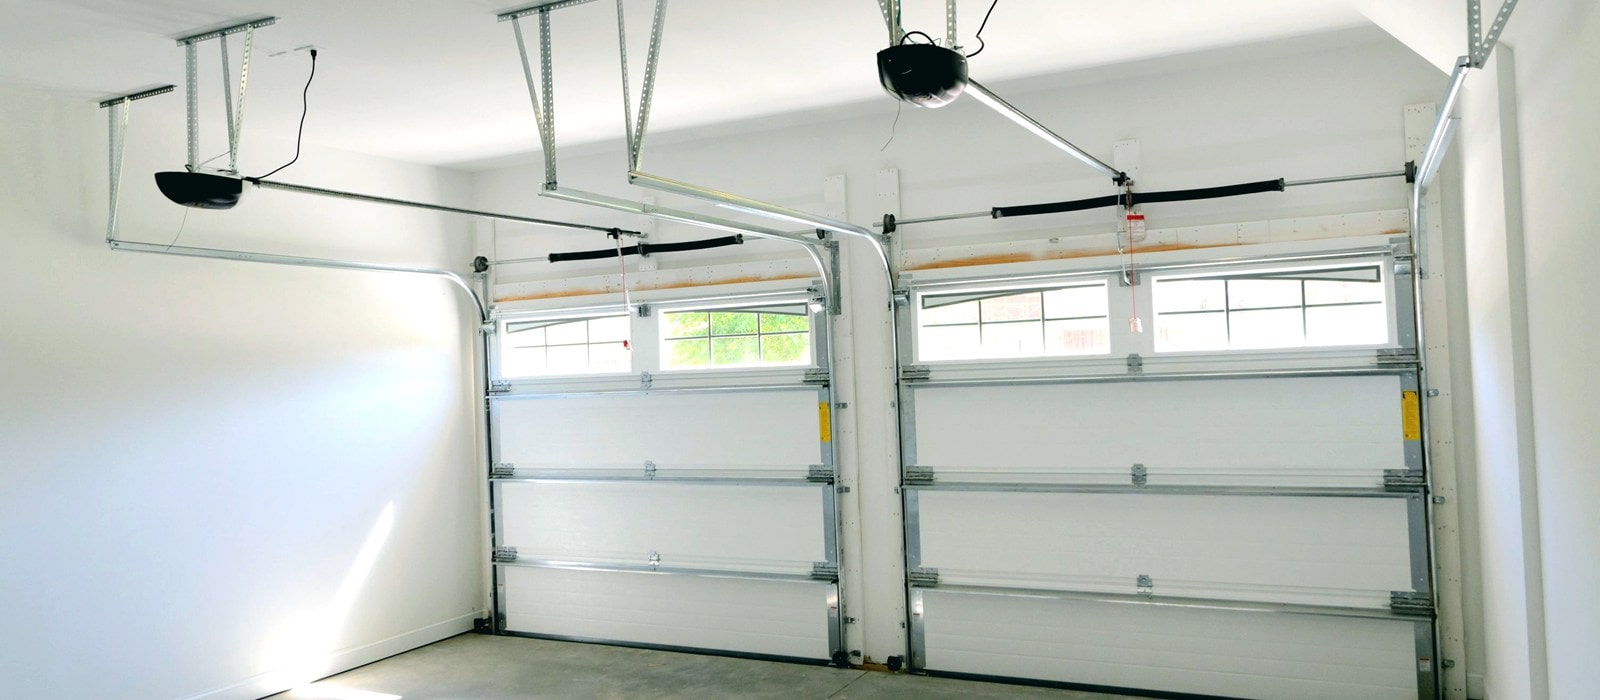 24 Hr 1 Garage Door Repair Service In Encino Ca 91316 Call Now